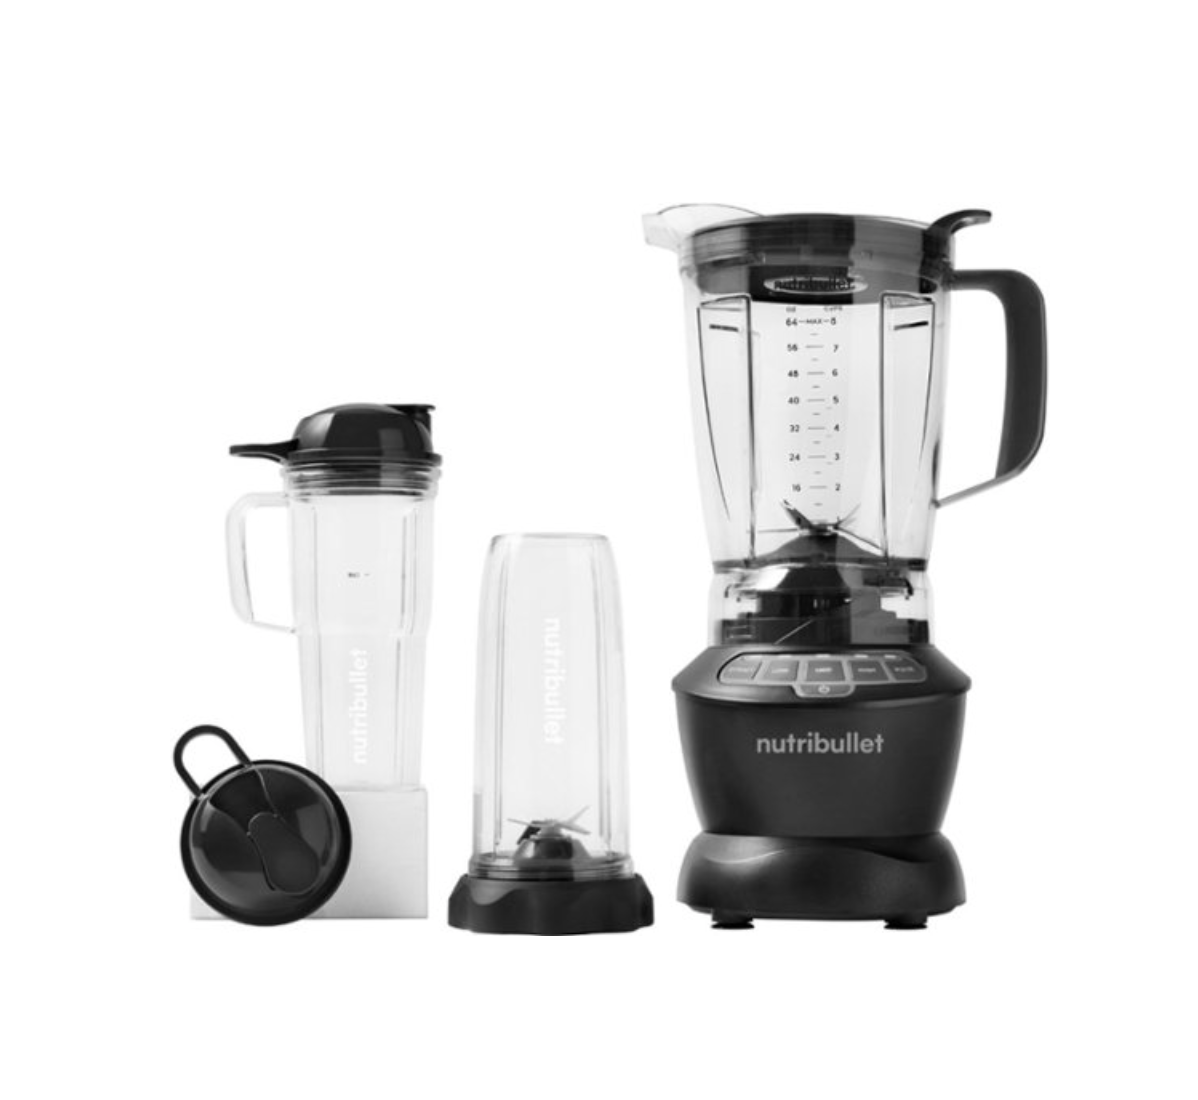 10 Best Blenders to Buy 2020 - Top Blenders for Every Budget